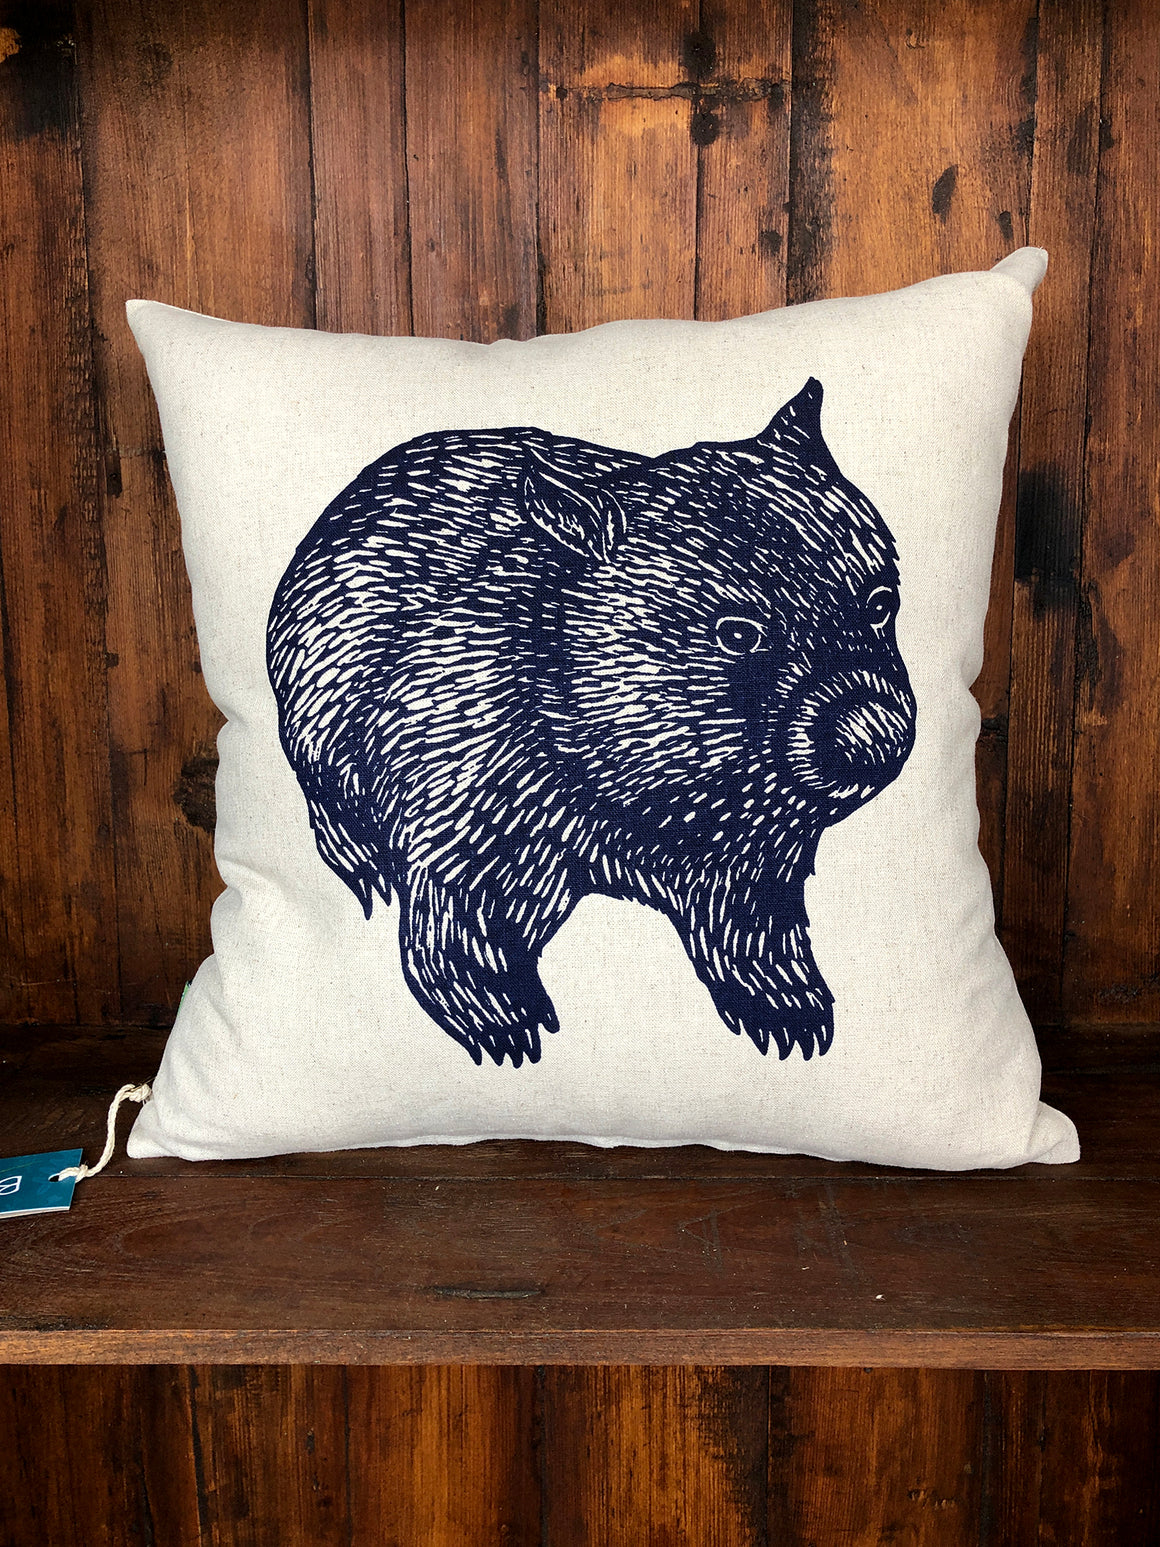 Bursaria Workshop wombat cushion